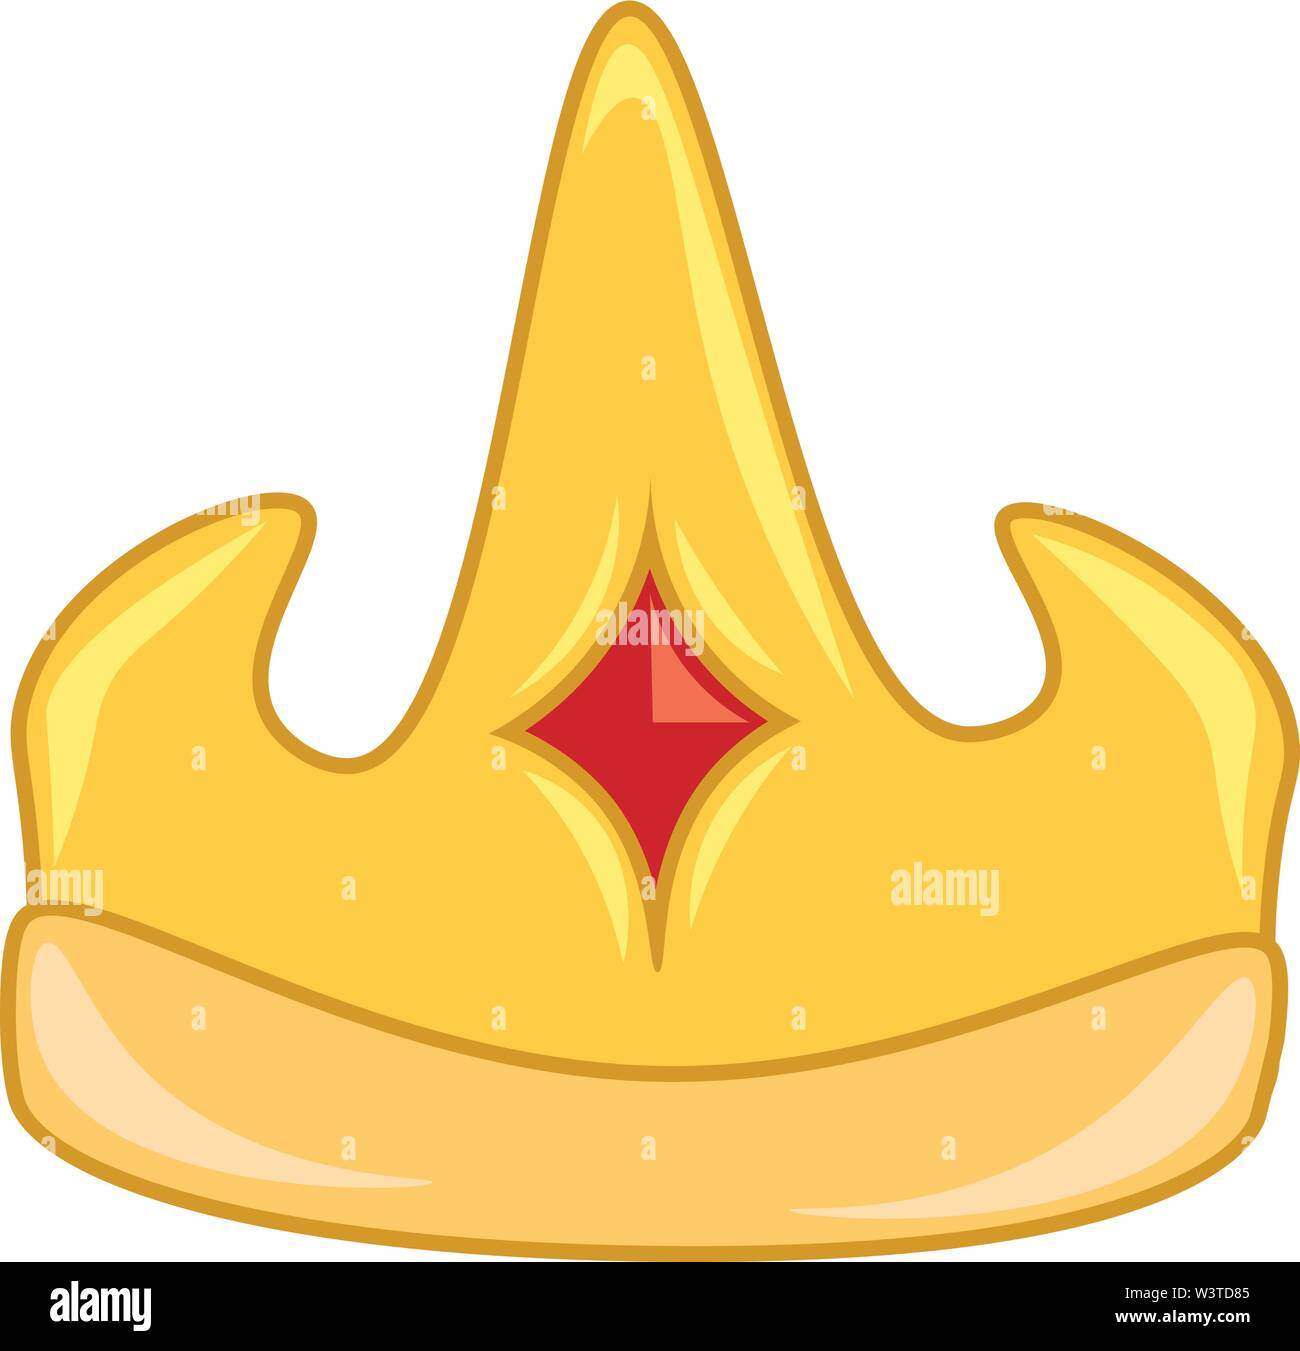 A golden crown with orange stone at the center, vector, color drawing or illustration. - Stock Image